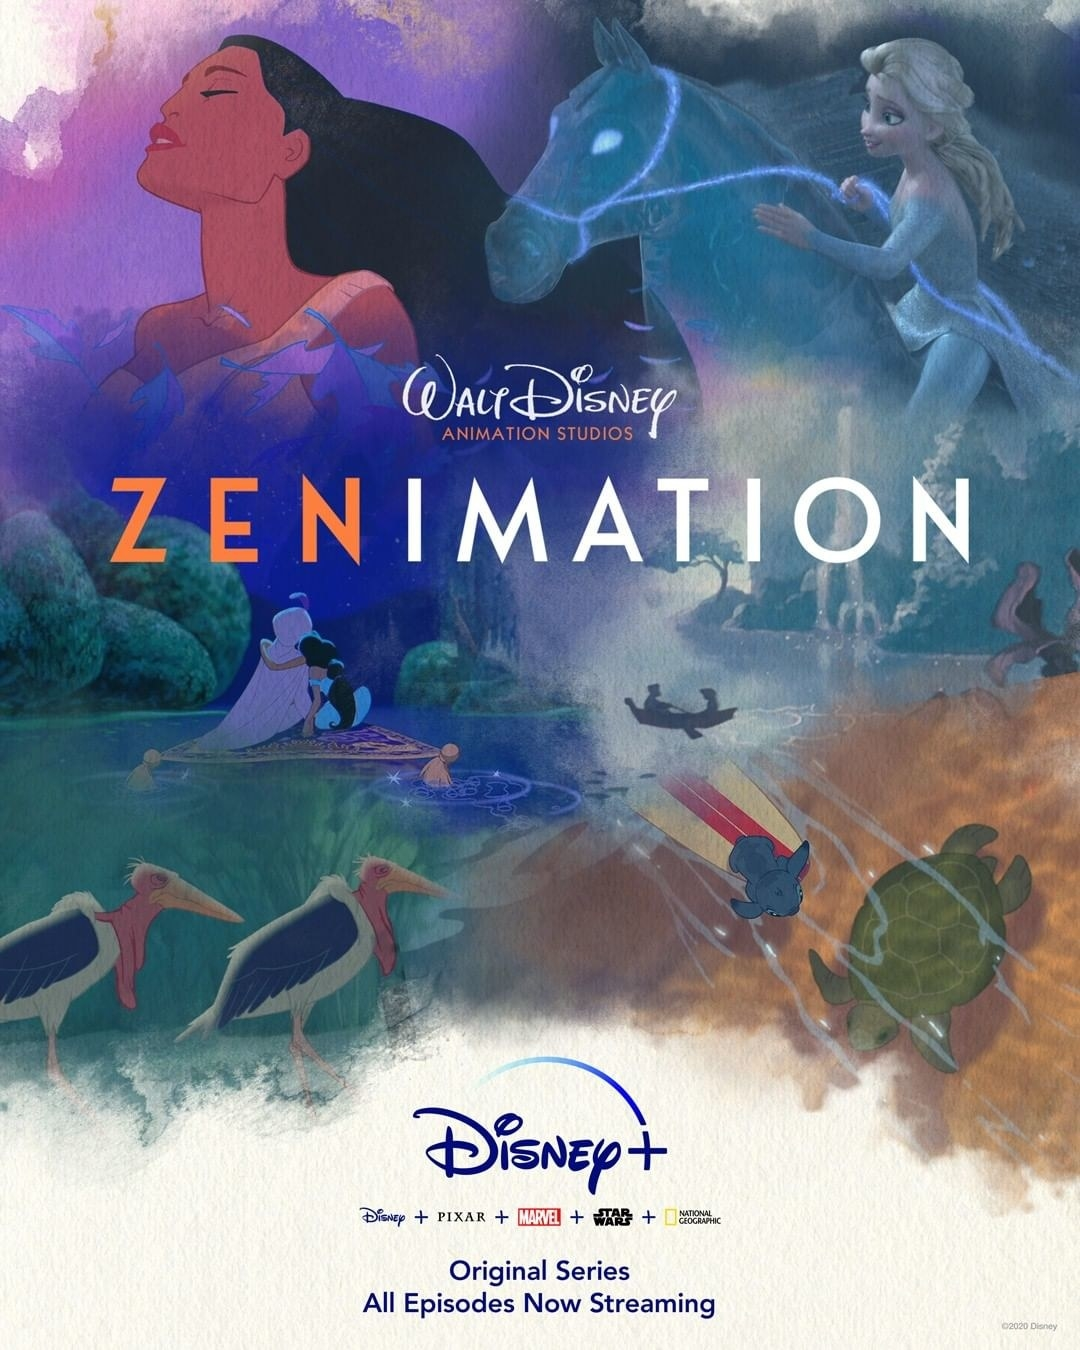 a poster for zenimation